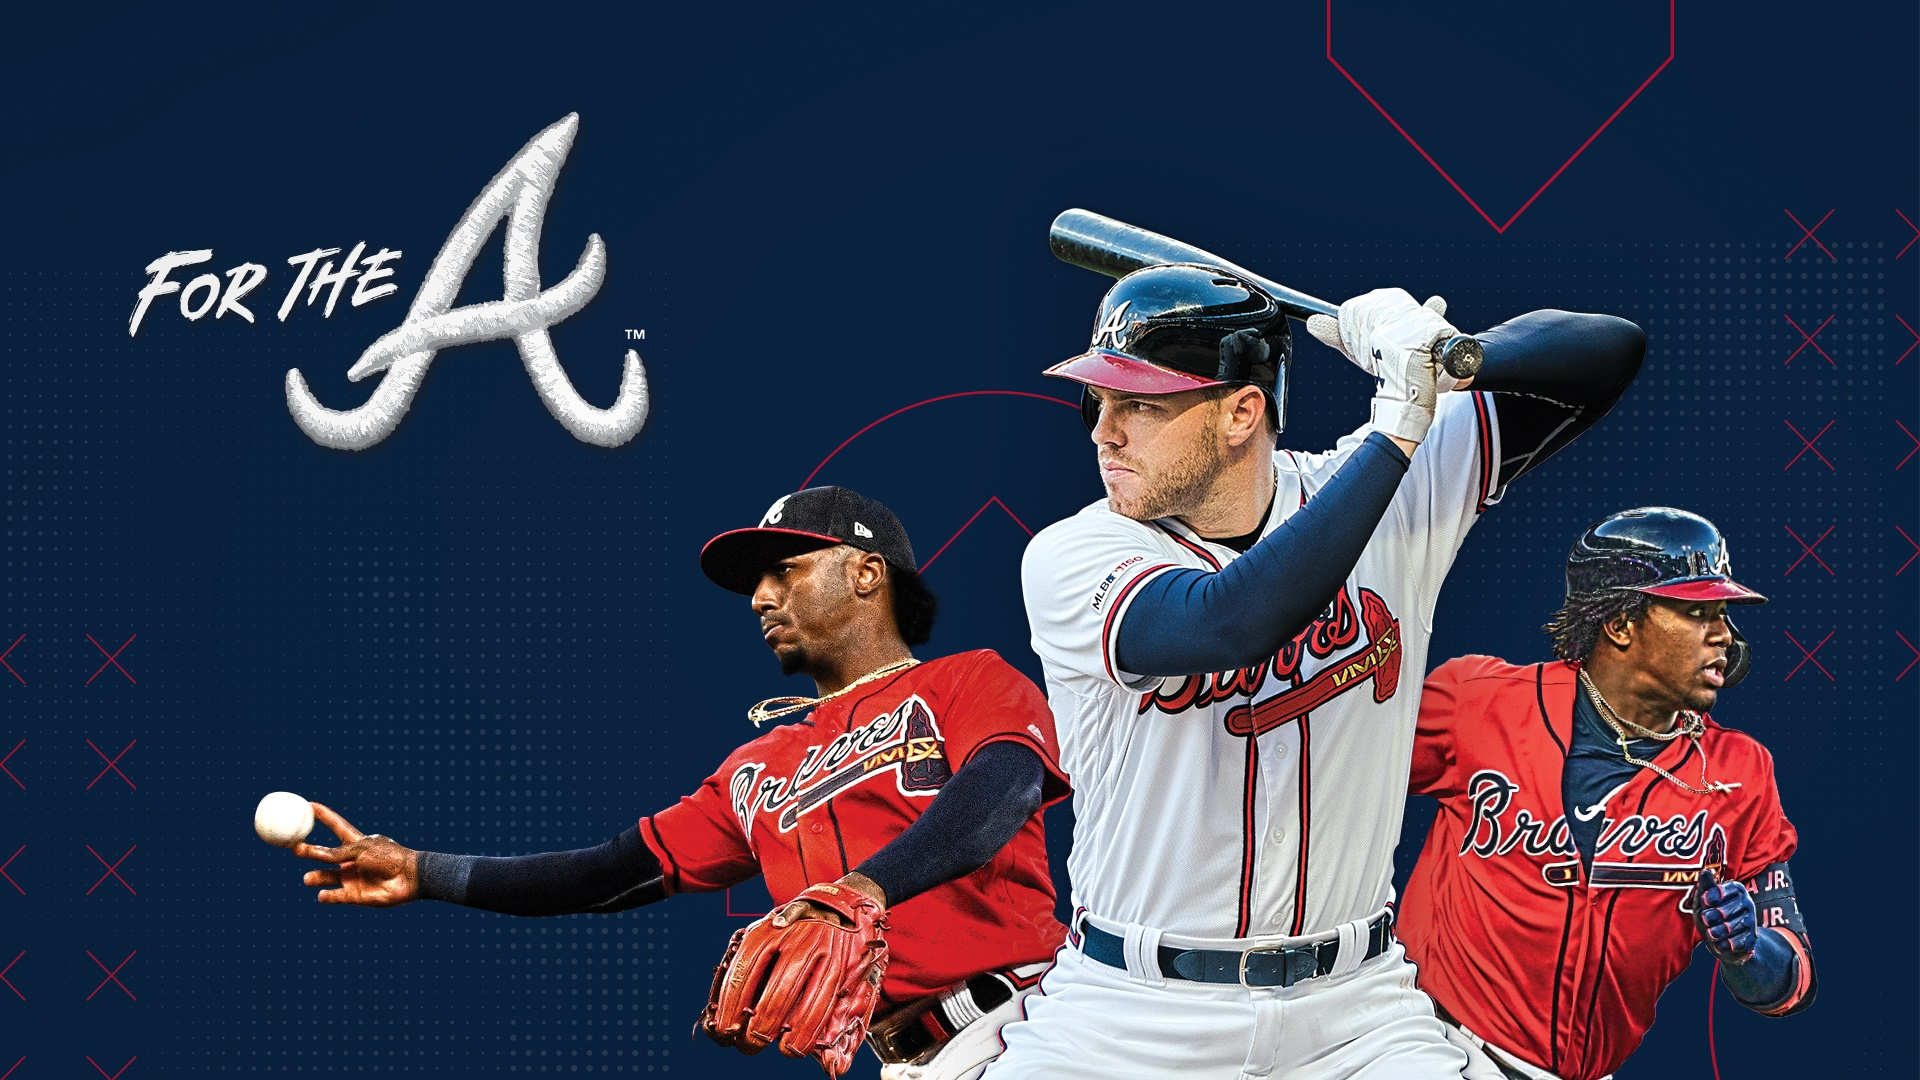 Braves Wallpaper – Get the Latest and Greatest